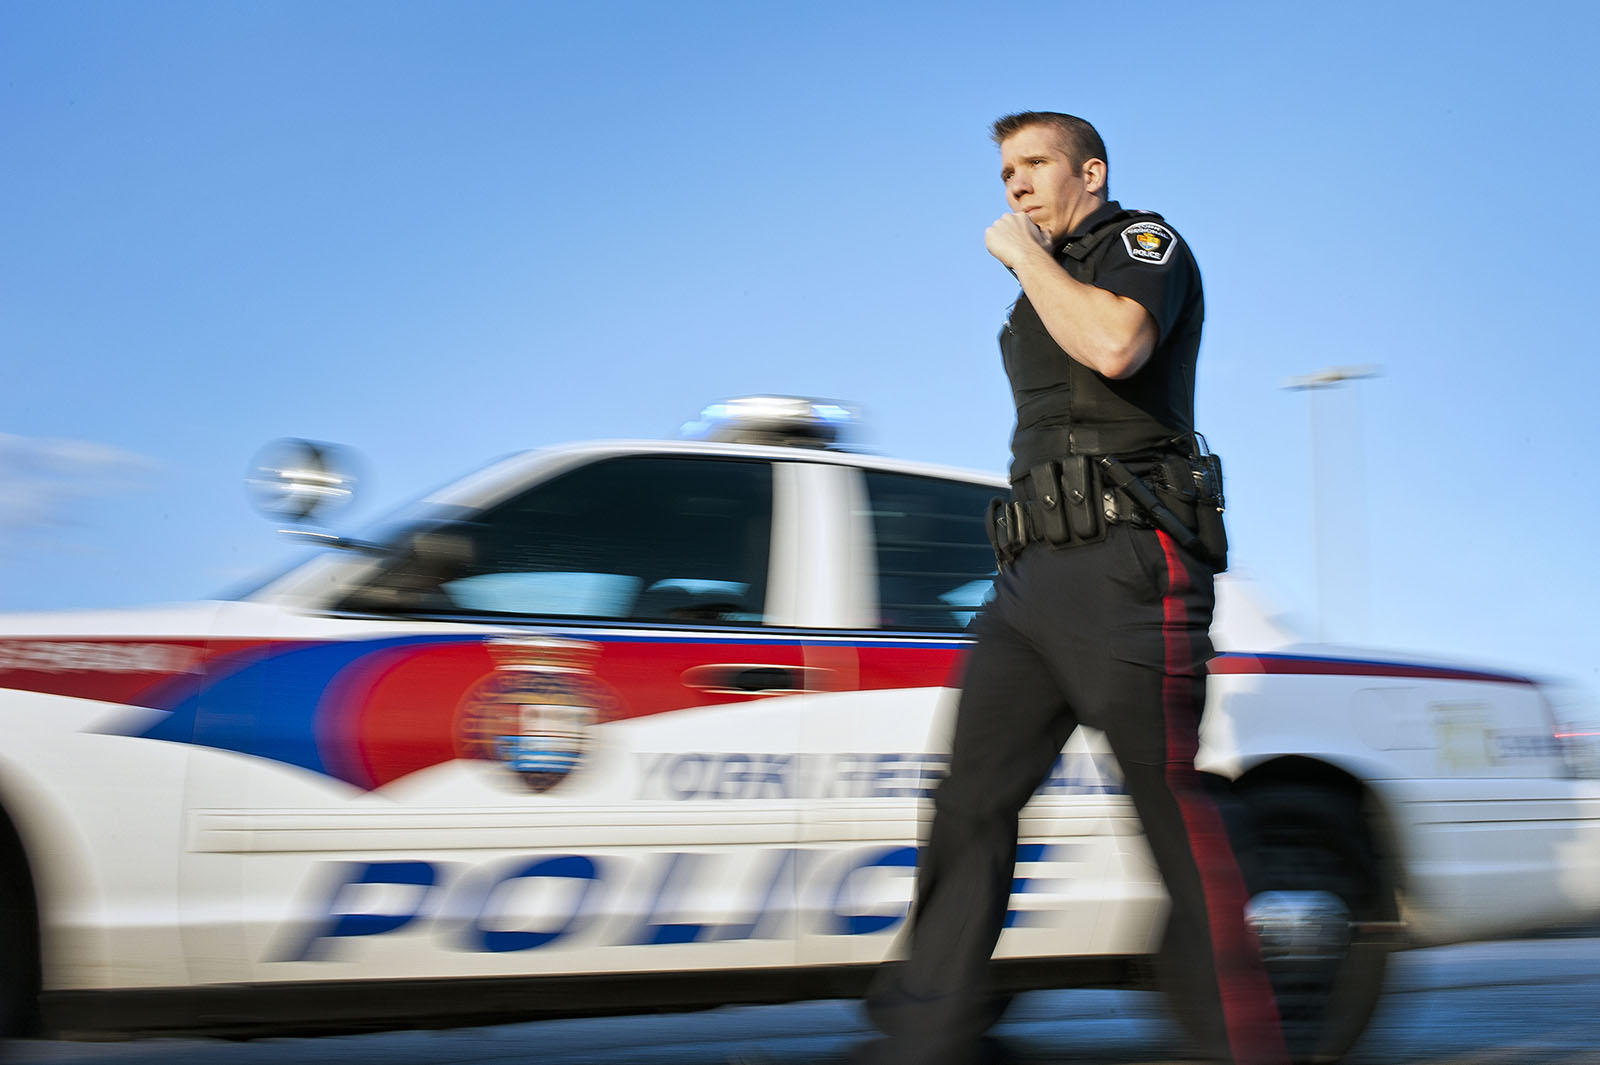 York Regional Police officer standing by police cruiser